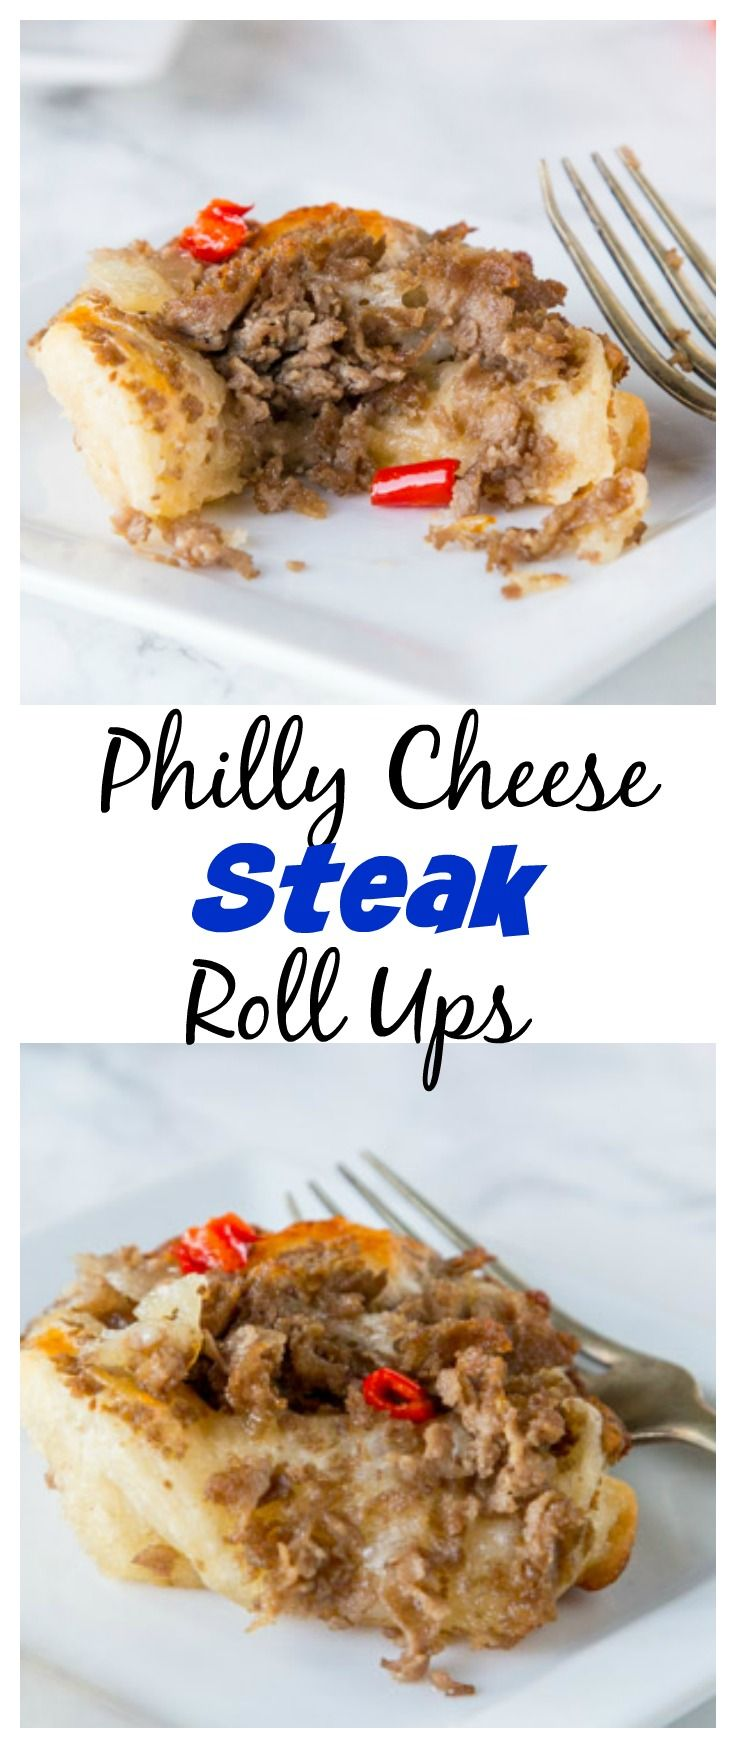 Philly Cheese Steak Roll Ups